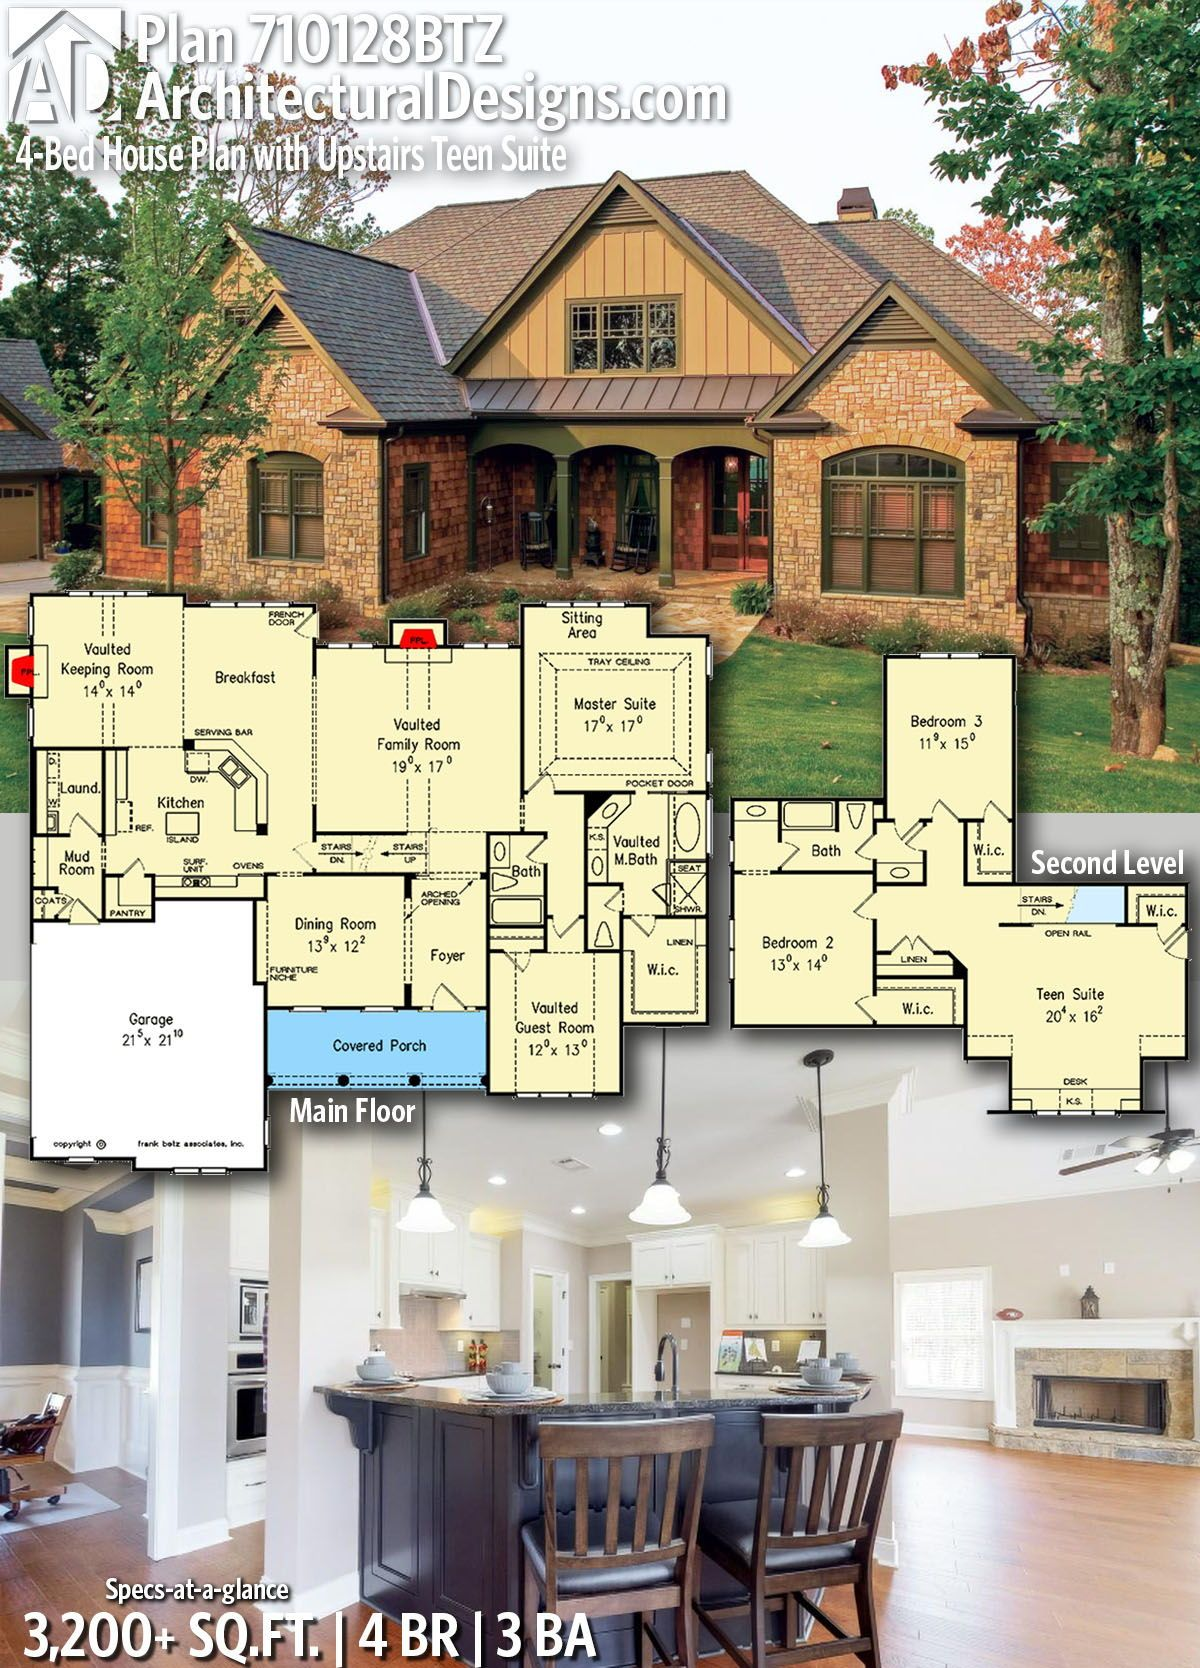 Architectural designs home plan btz gives you bedrooms baths and sq also rh pinterest